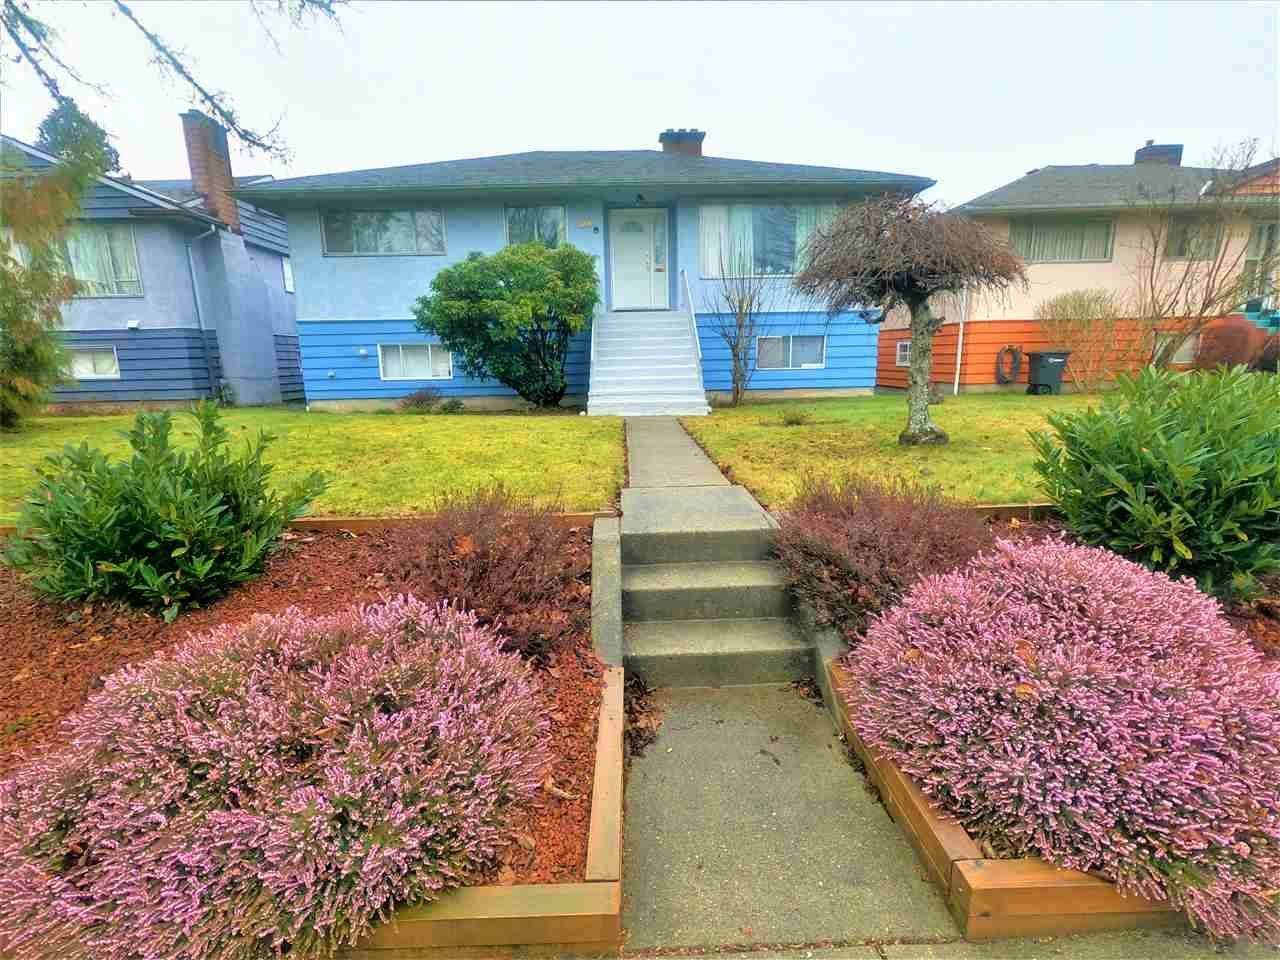 """Main Photo: 6667 ELWELL Street in Burnaby: Highgate House for sale in """"HIGHGATE"""" (Burnaby South)  : MLS®# R2544921"""